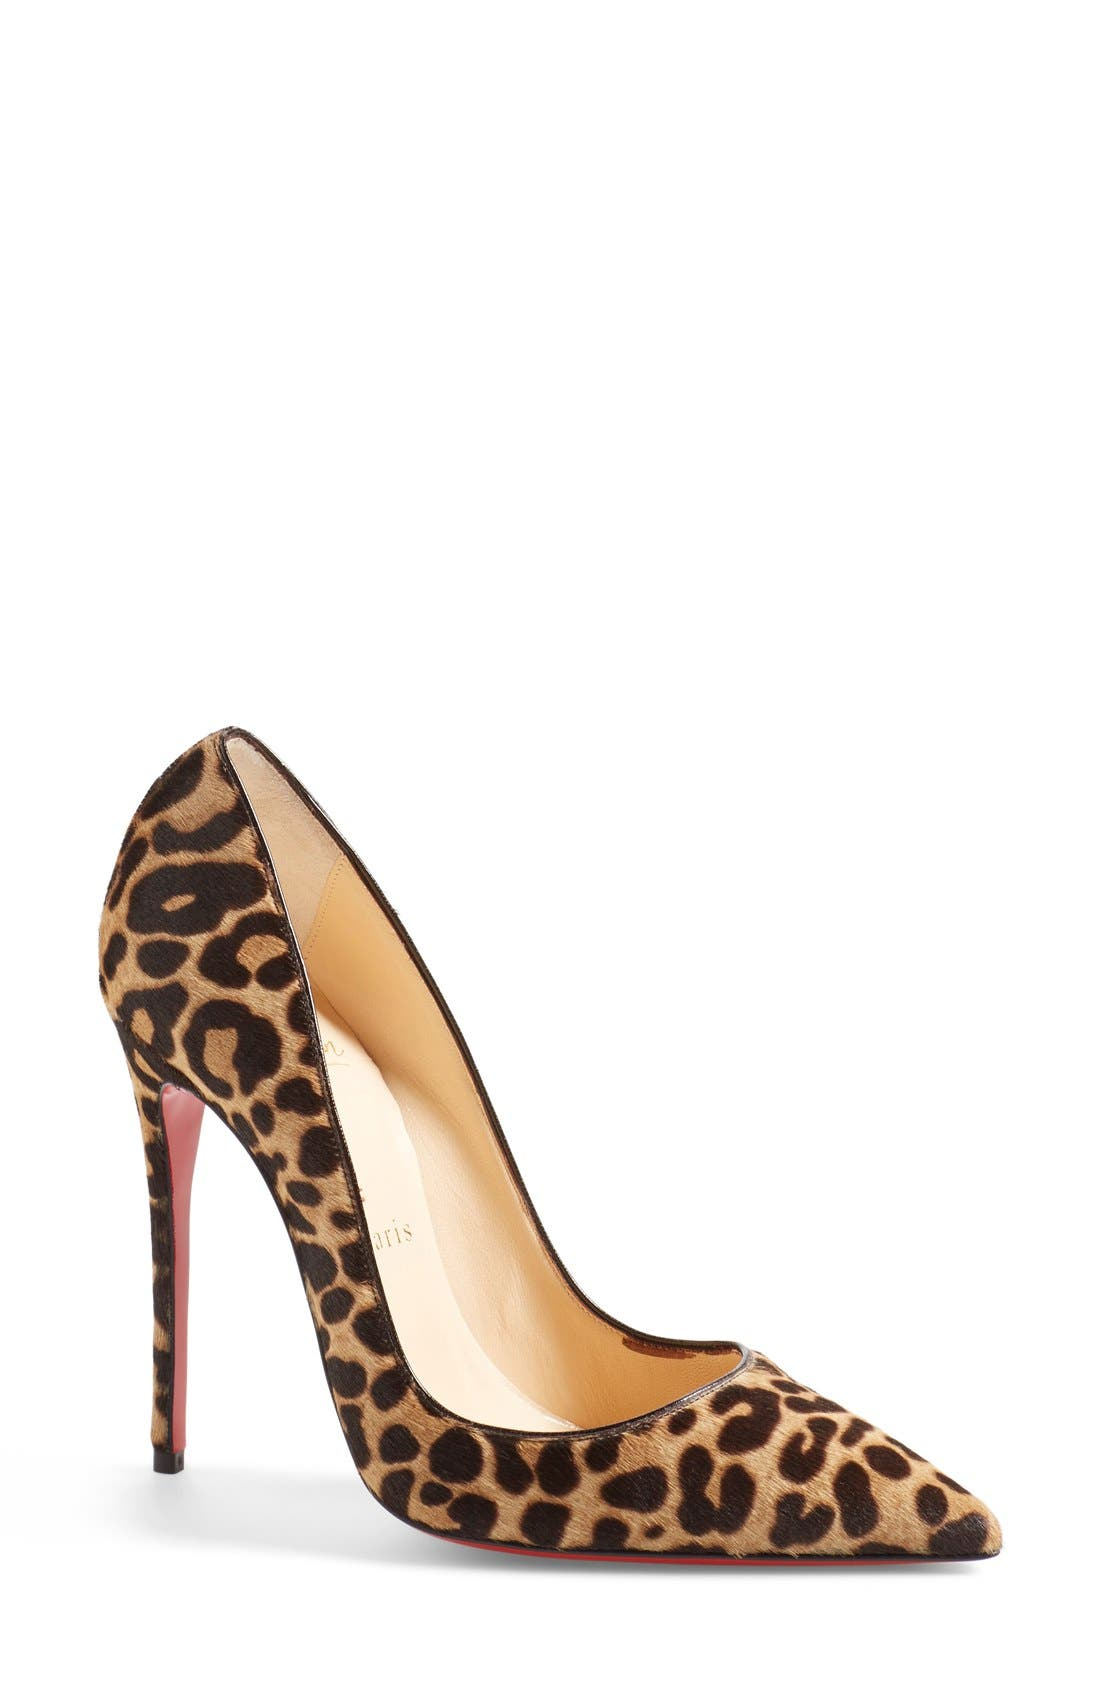 Alternate Image 1 Selected - Christian Louboutin 'So Kate' Pointy Toe Pump